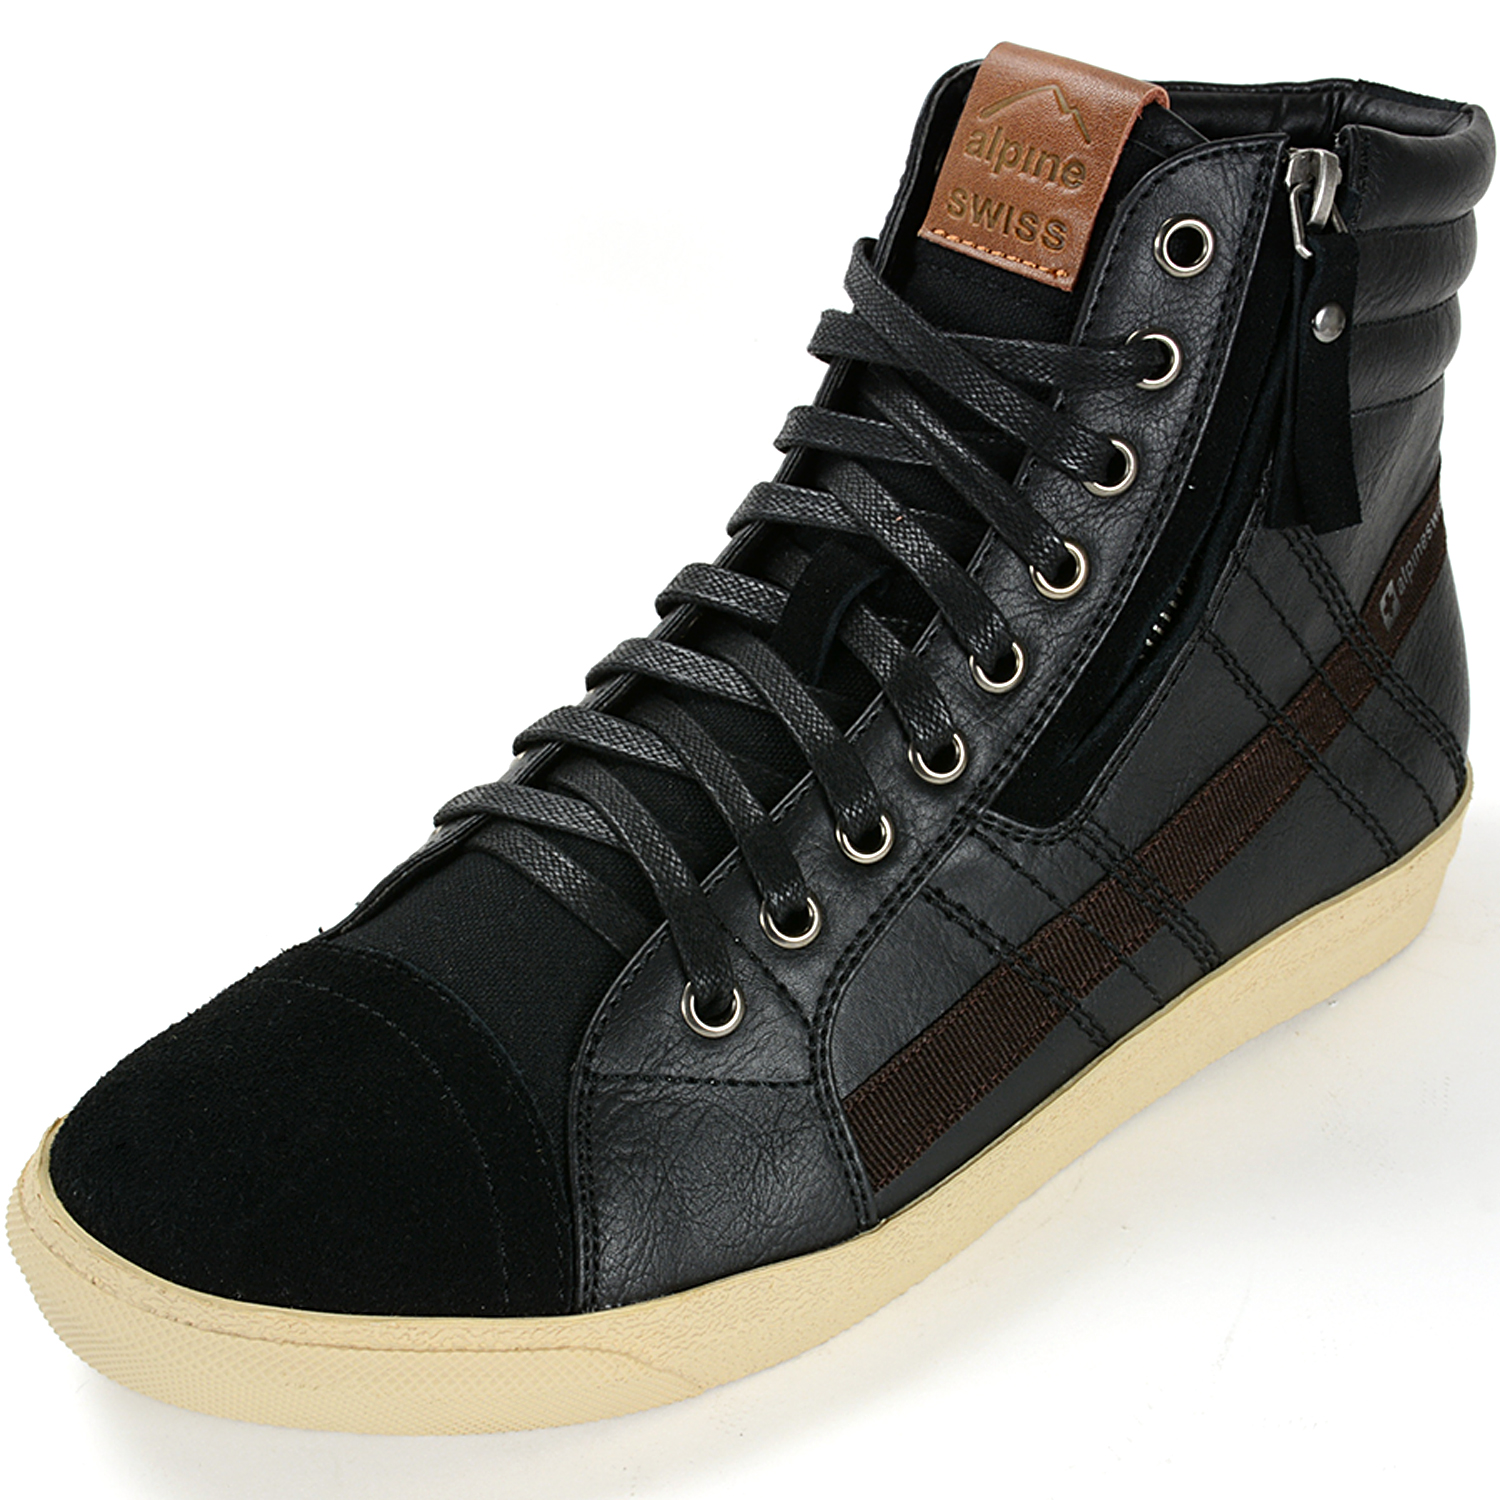 Alpine Swiss Reto Mens High Top Sneakers Lace Up & Zip Ankle Boots Fashion Shoes